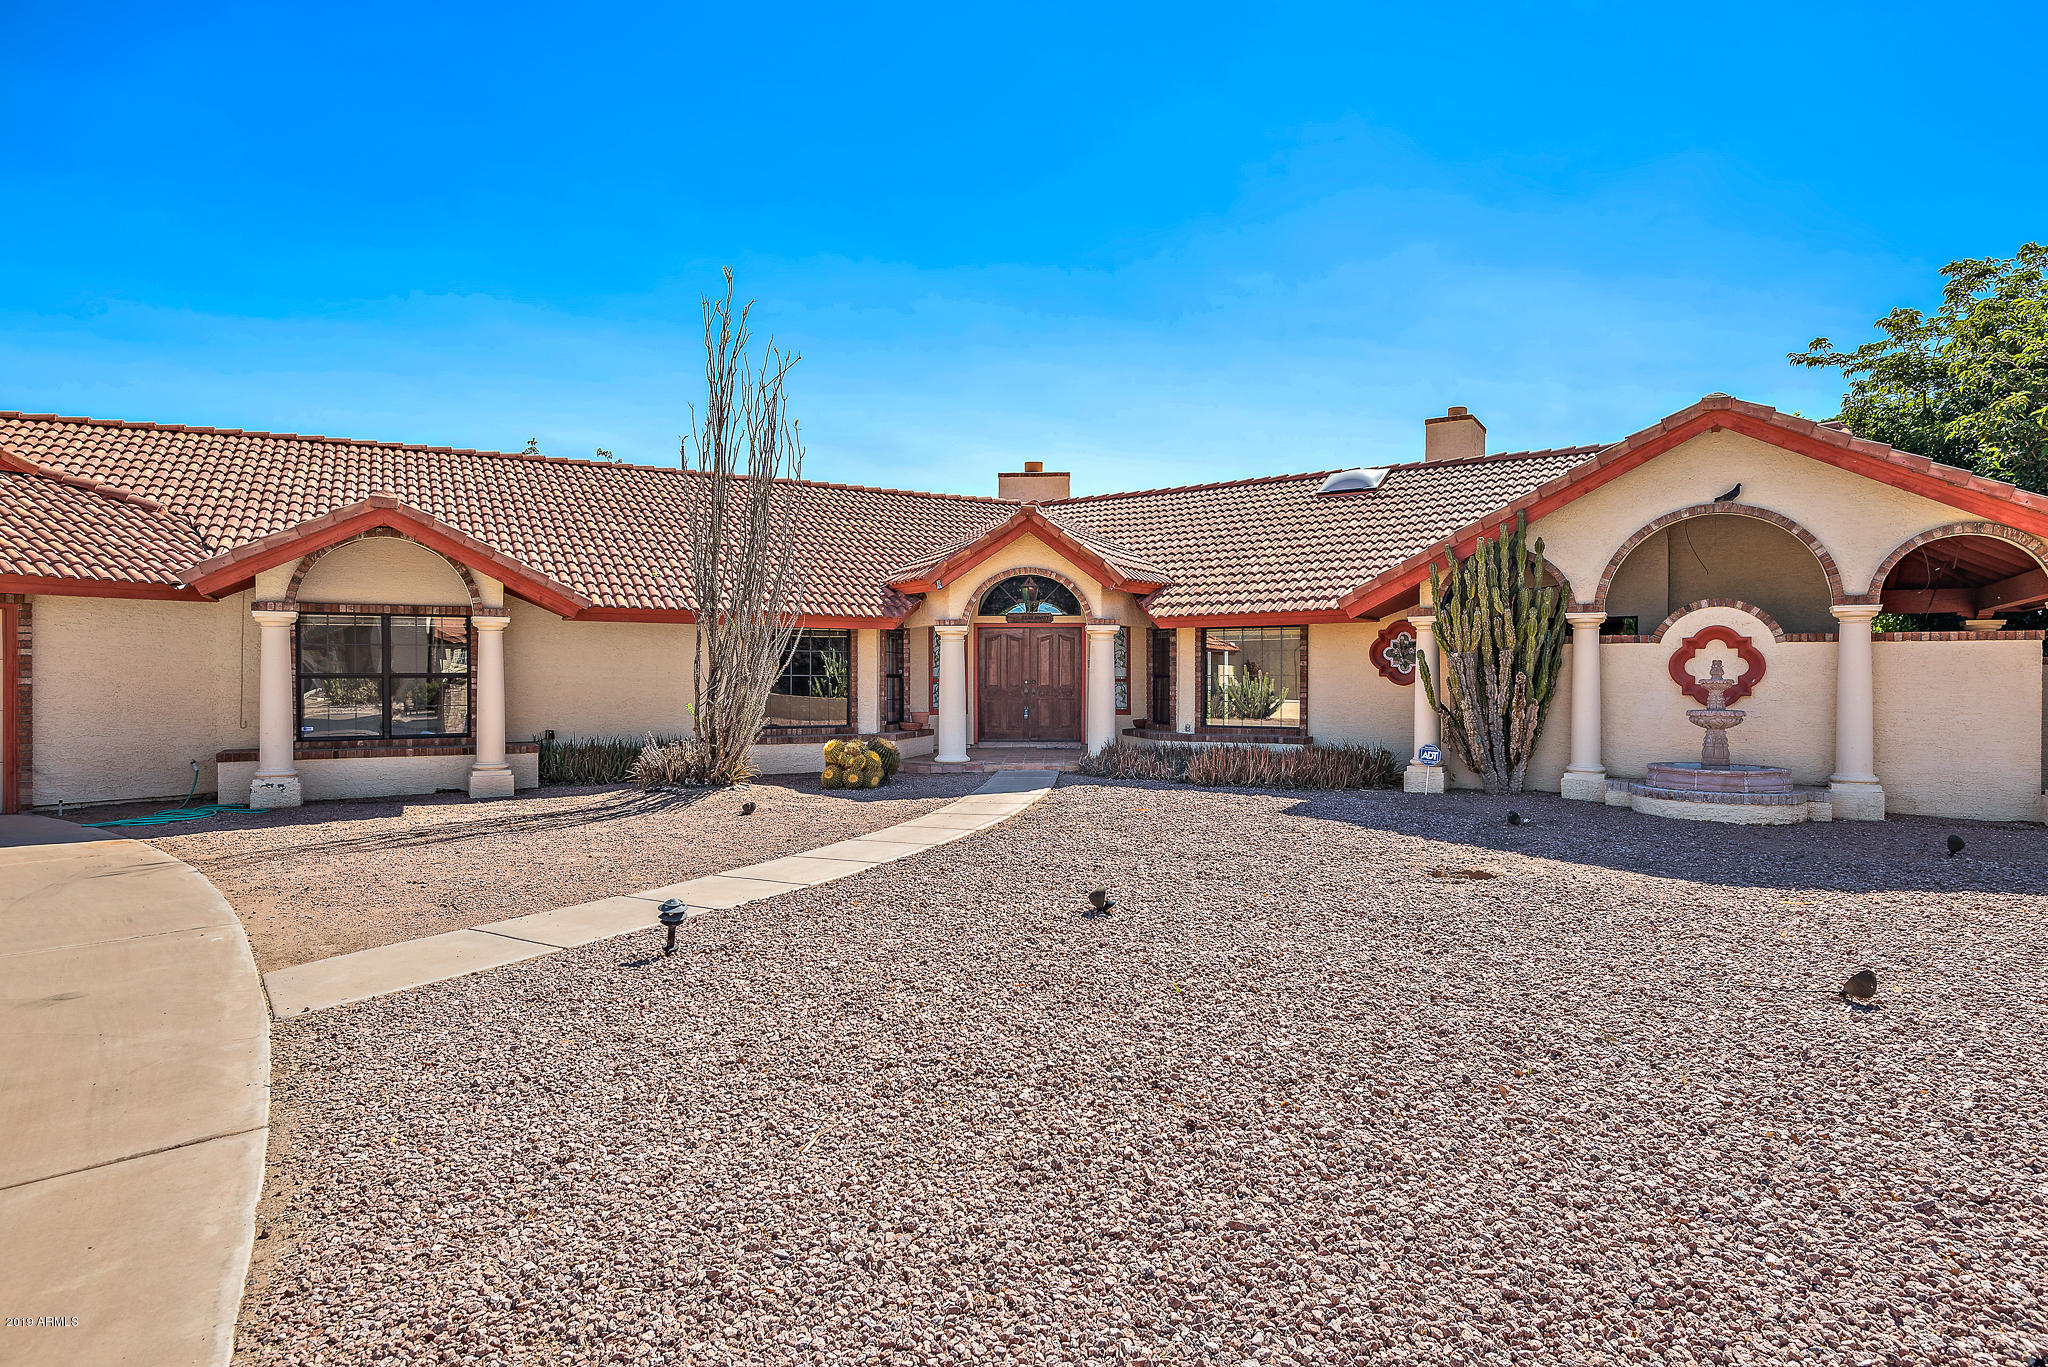 MLS 5945714 4300 W MERCURY Way, Chandler, AZ 85226 Chandler AZ Stellar Airpark